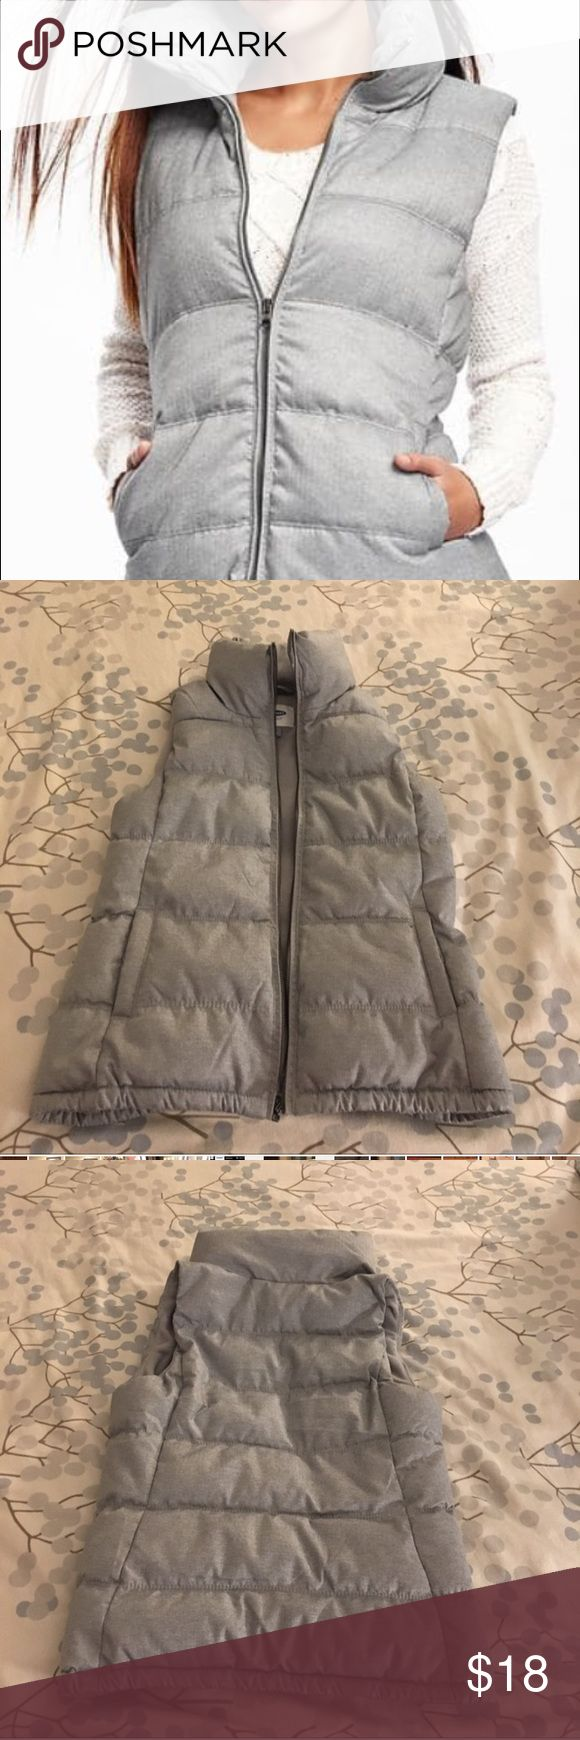 Old Navy women's vest New without tags women's old Navy vest.. cool textured grey vest size Large Old Navy Jackets & Coats Vests